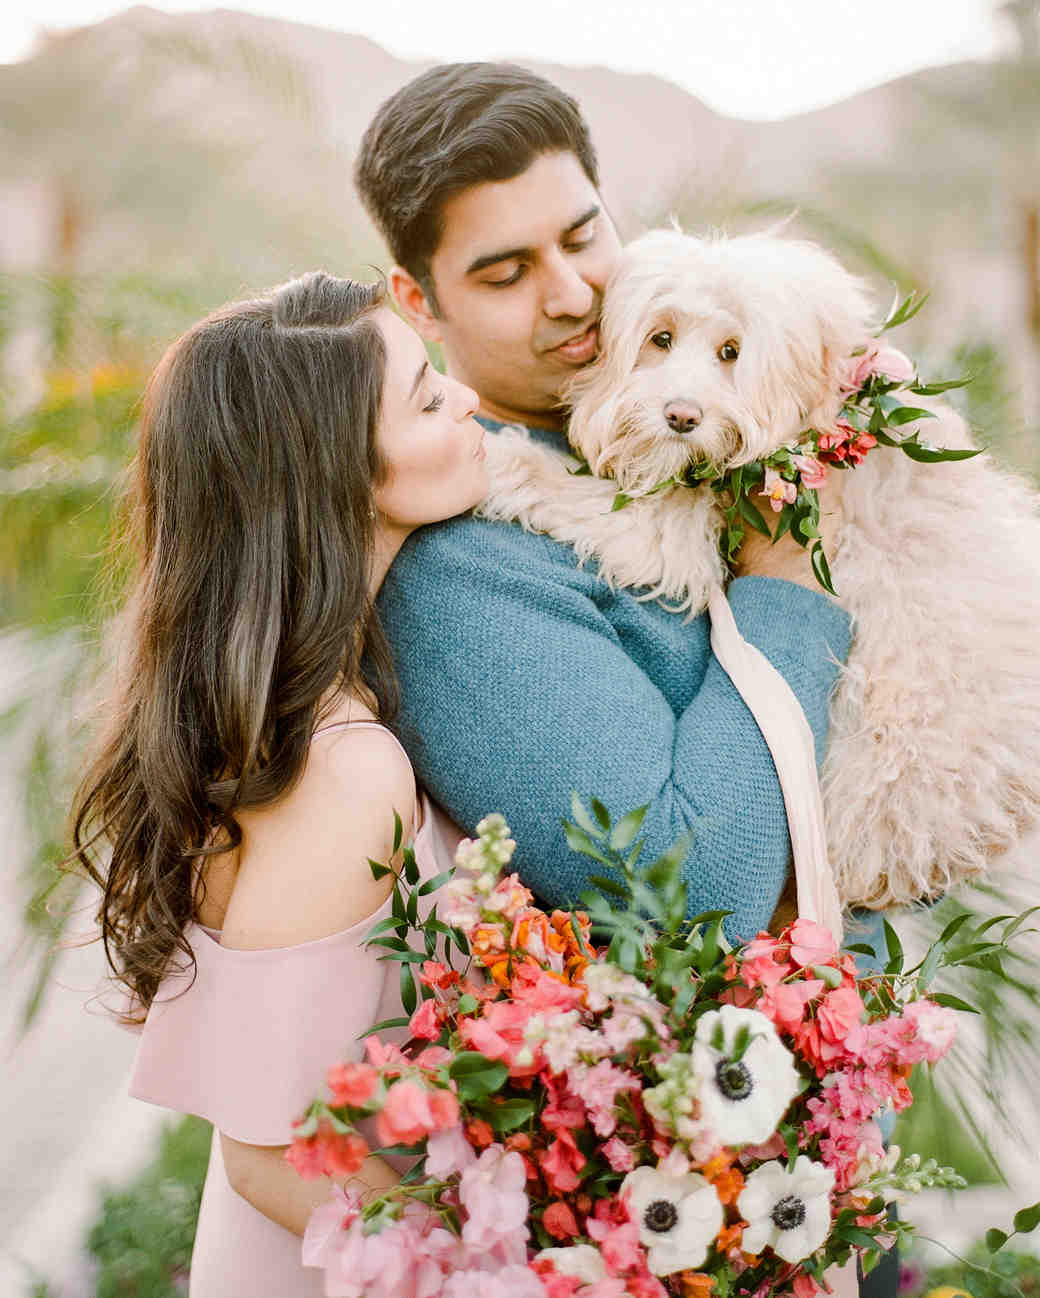 couple with dog and flowers engagement photo